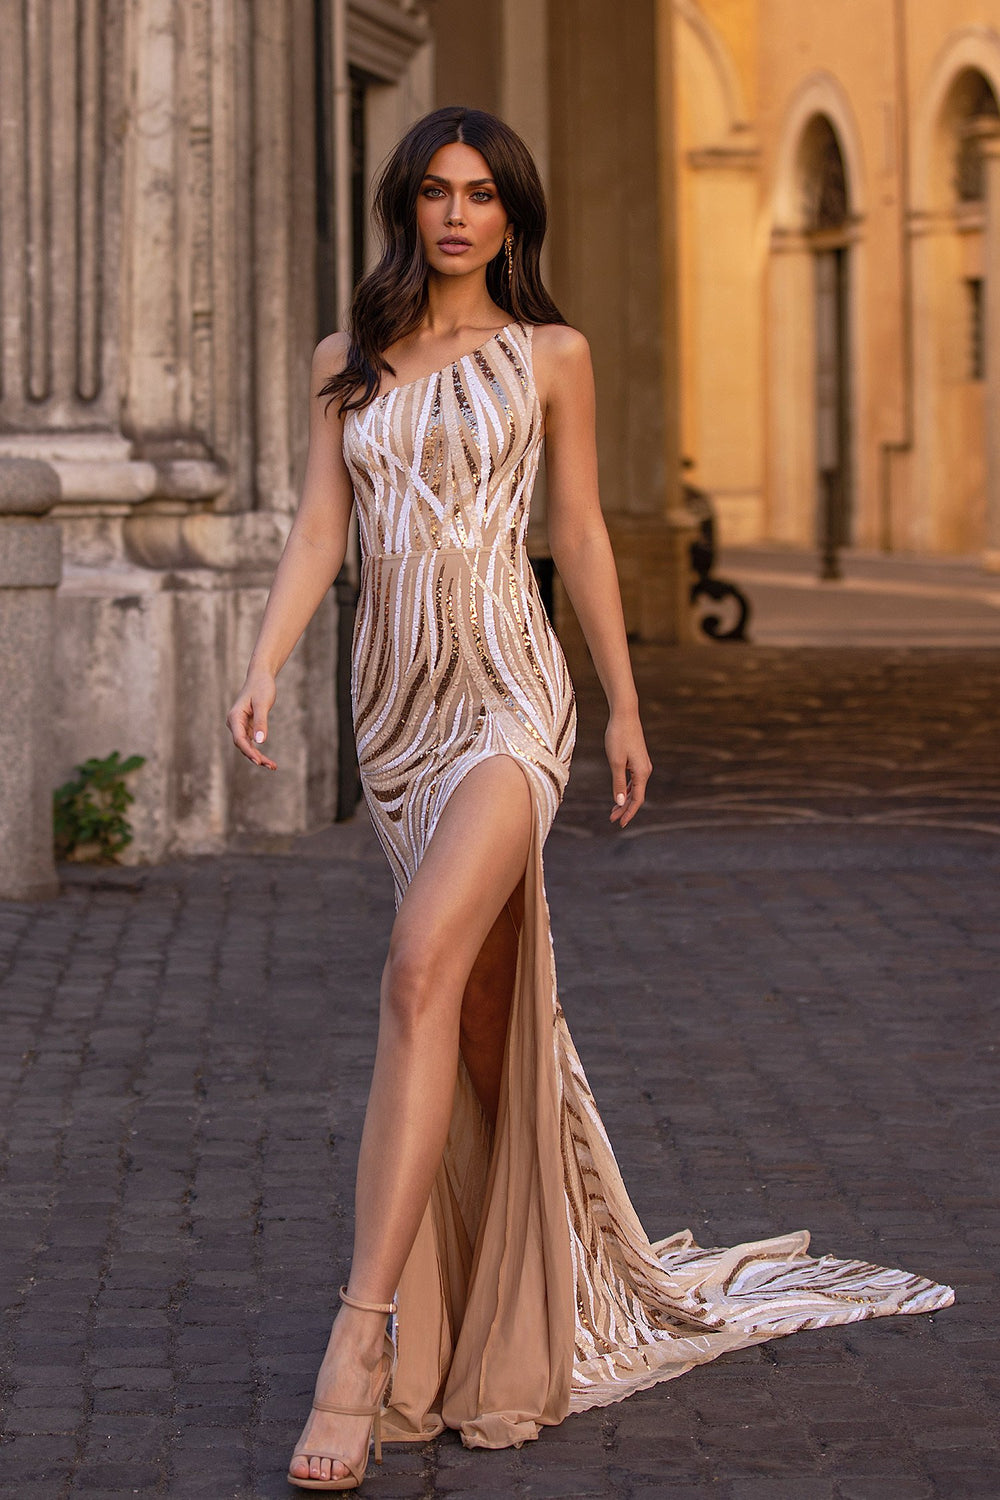 Pauletta - Nude One Shoulder Patterned Sequin Gown with Side Slit